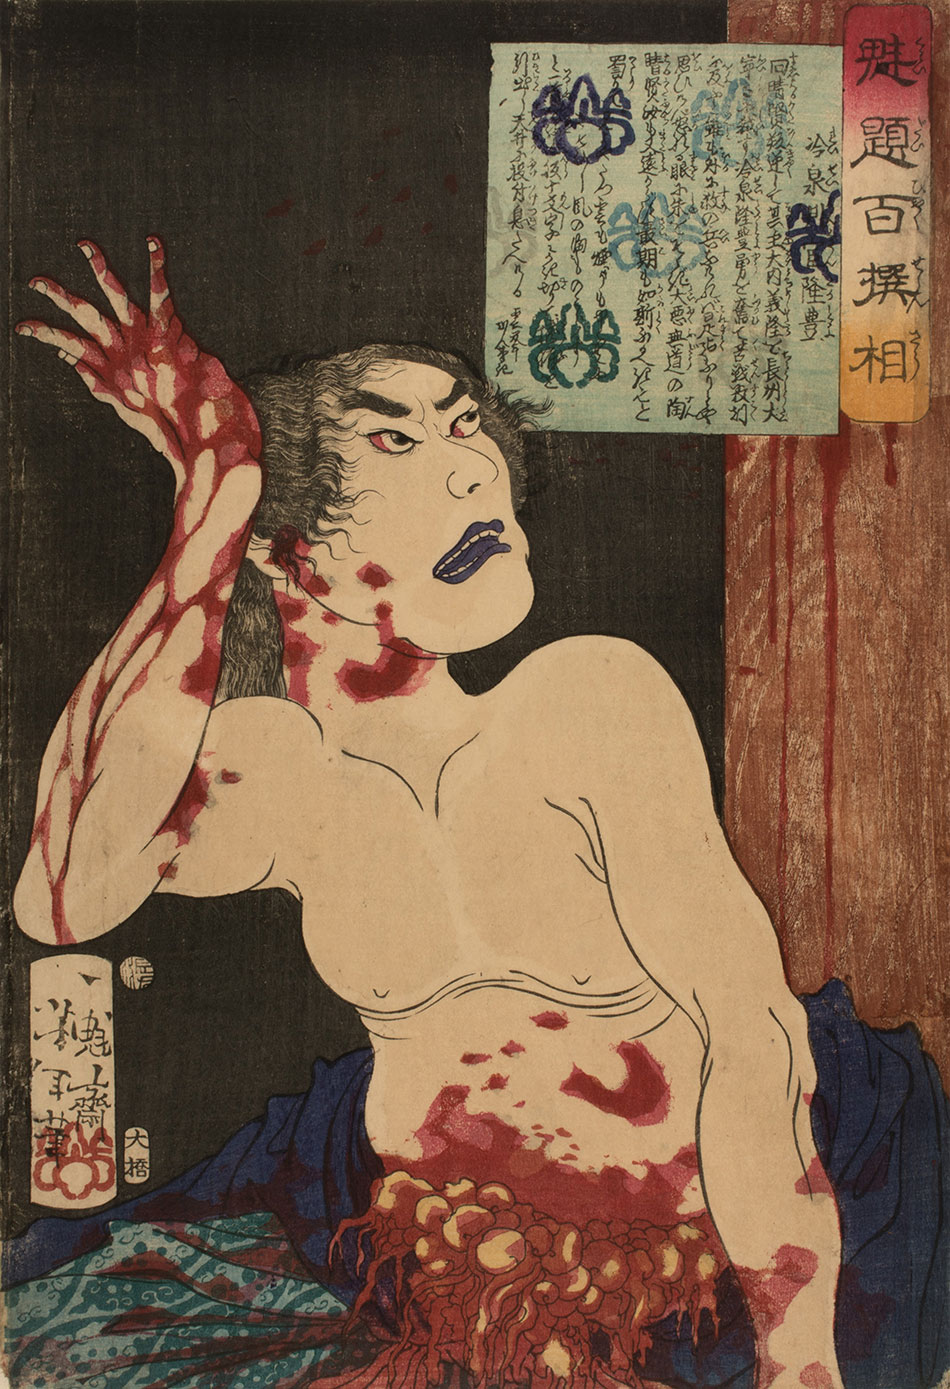 Reisei-Hangan-Takatoyo-Dying-of-Disembowelment,-from-the-series-One-Hundred-Aspects-of-Battle-1866-by-Tsukioka-Yoshitoshi_Philadelphia-Museum-of-Art_950-W